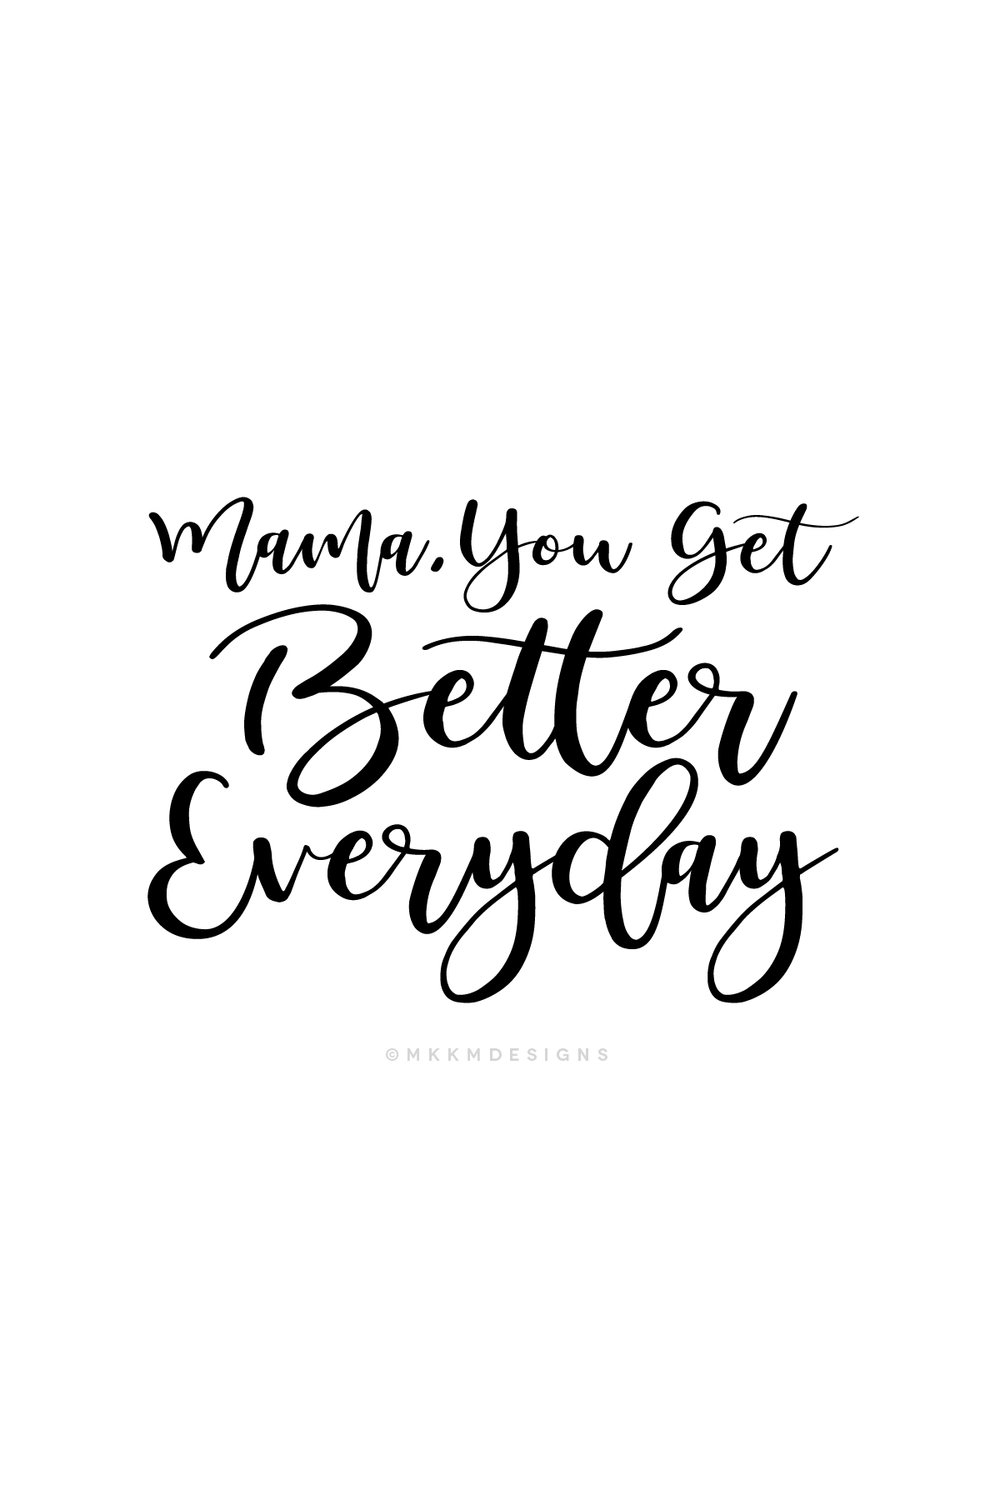 Mama, you get better everyday - Monday Motivation for Boss Ladies and Mompreneurs  // Quotes from MKKMDesigns